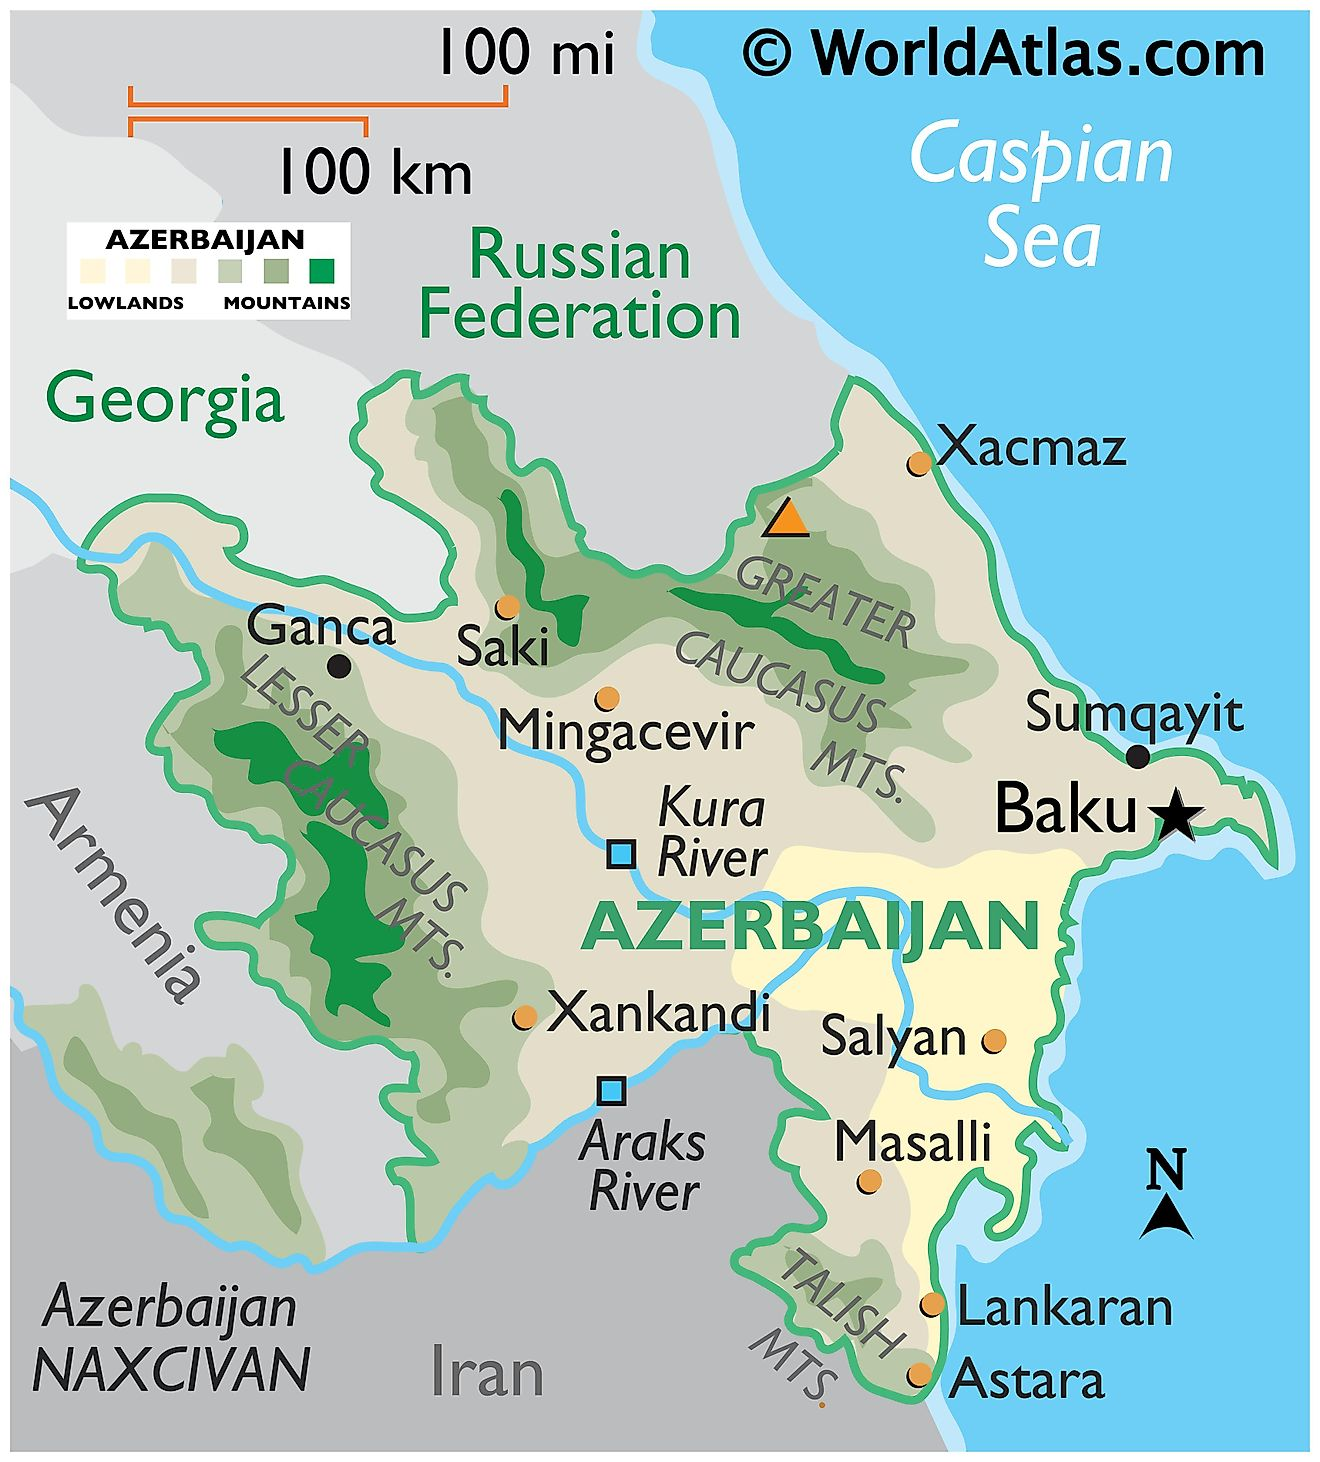 Physical Map of Azerbaijan showing state boundaries, relief, major rivers, mountain ranges, important cities, etc.